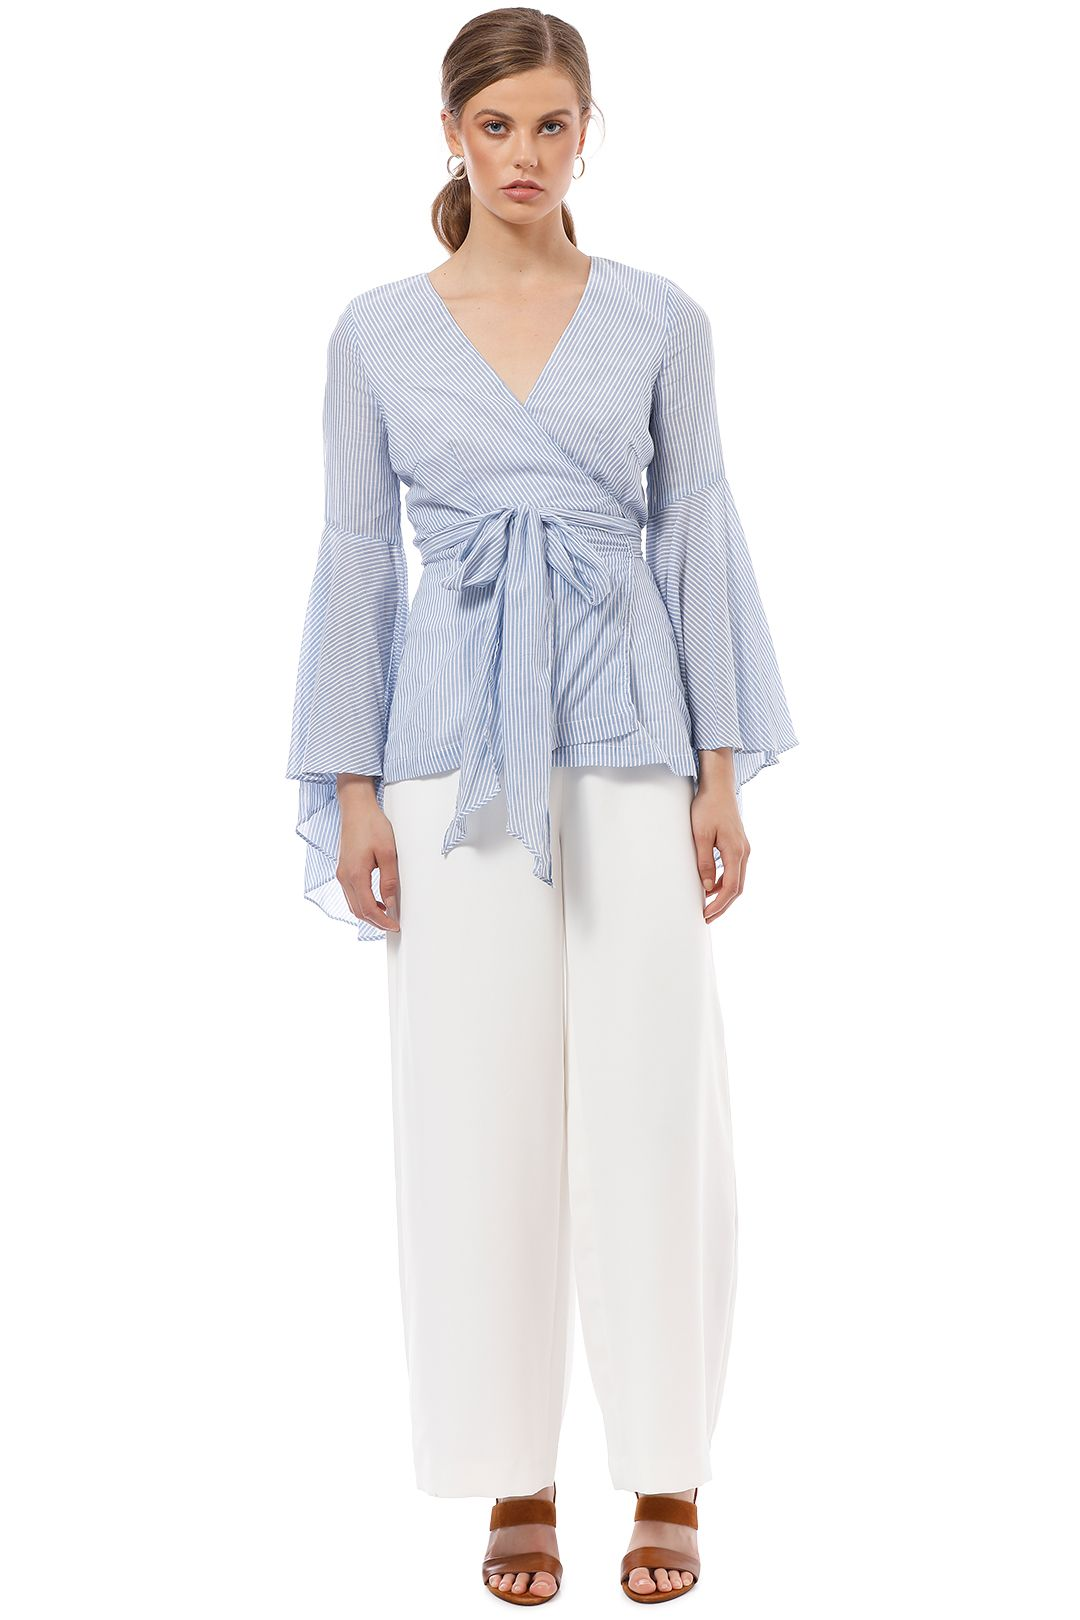 Shona Joy - St Martin Flared Sleeve Top - Blue - Front